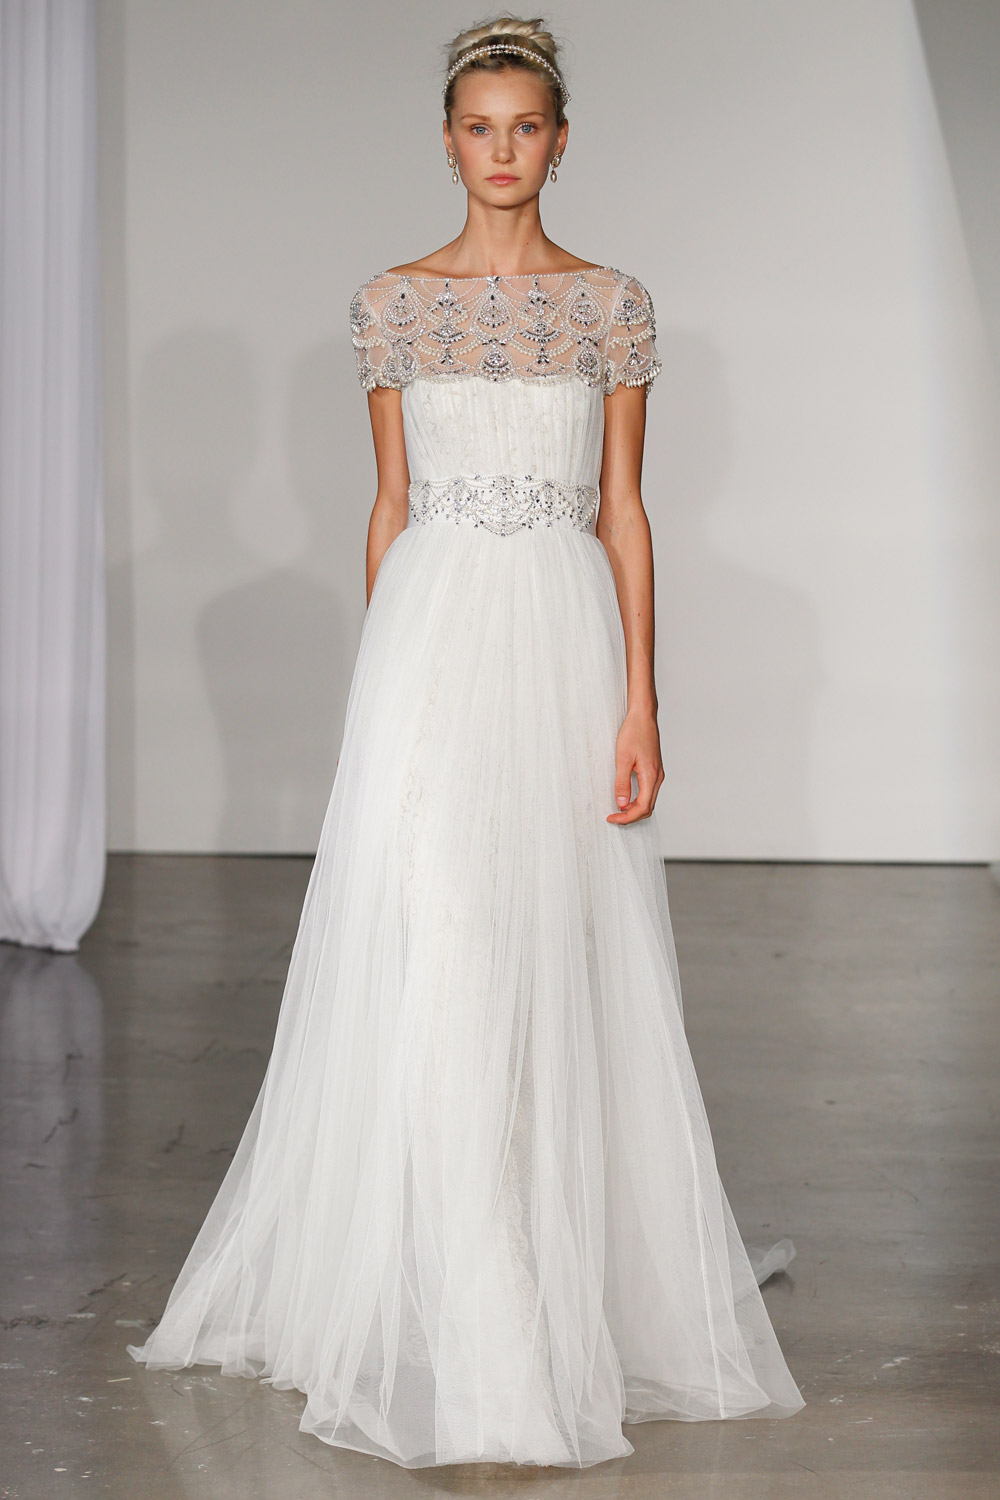 Enchanting marchesa wedding dresses modwedding for Unique wedding dress styles